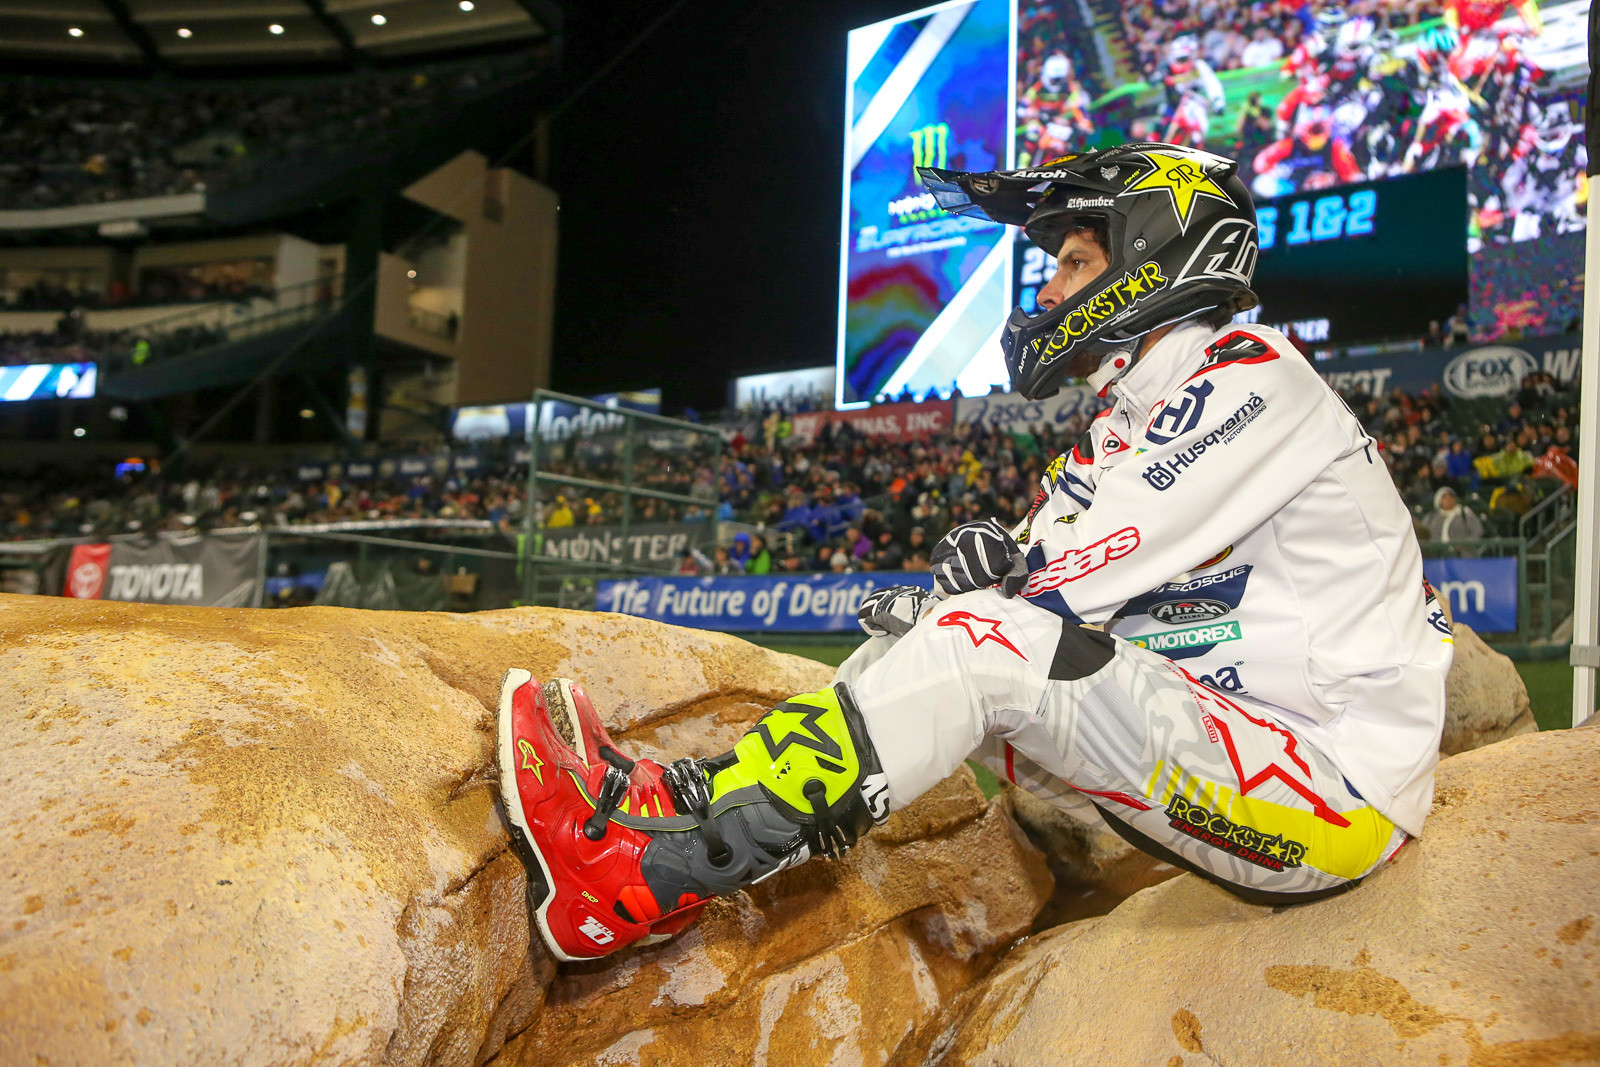 We're not sure what's up with Jason Anderson, but he sure didn't appear to be his usual speedy self at round one. We are sure that a 14th is not where the defending series champ wanted to finish in round one.